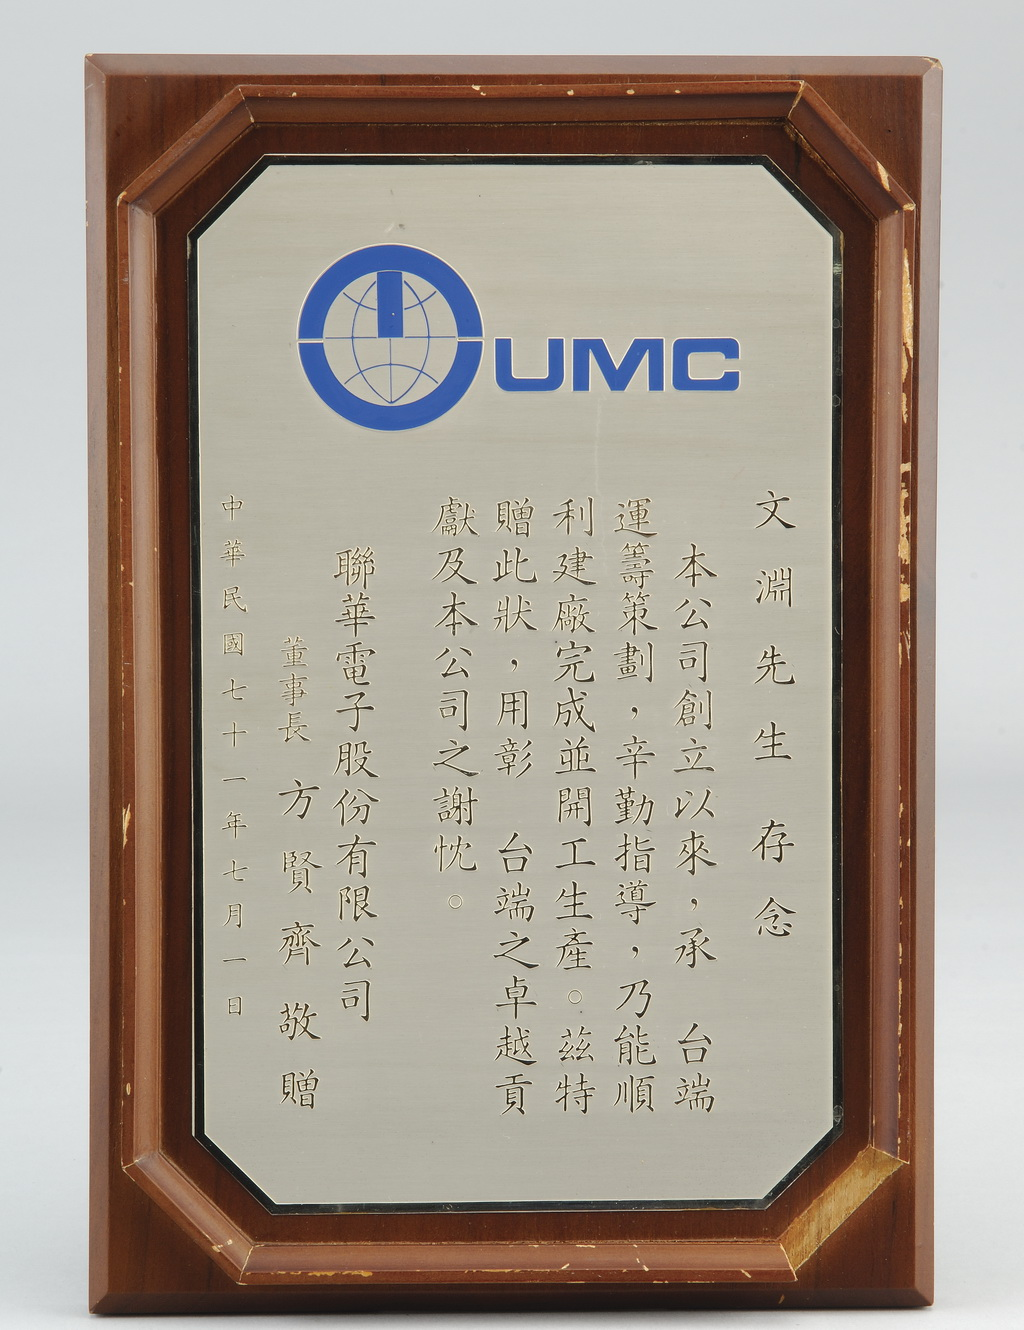 Gratitude Medal given by UMC to Pan Wen-Yuan